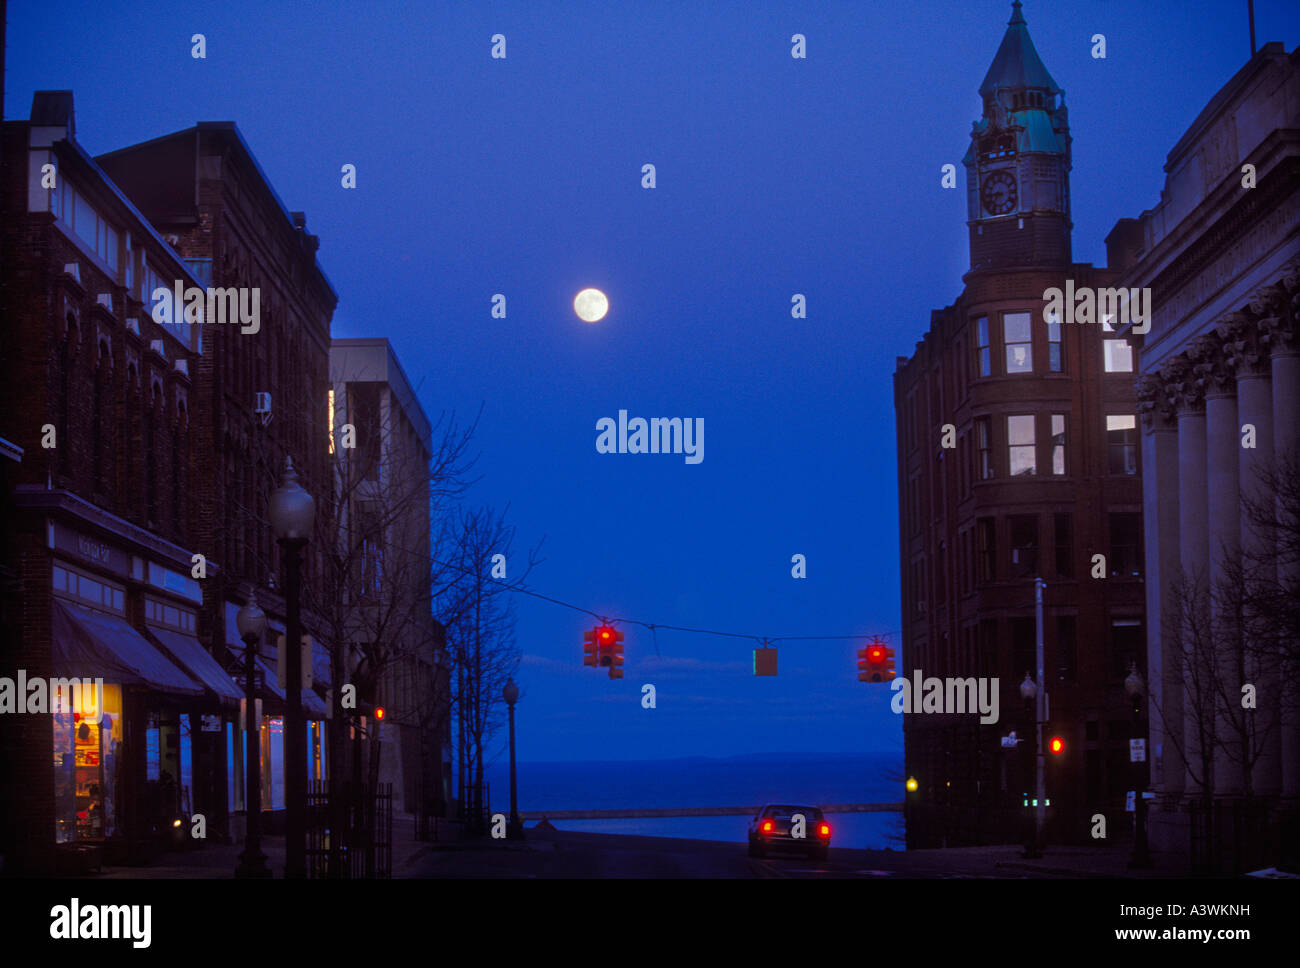 Downtown Marquette with a full moon at dusk - Stock Image